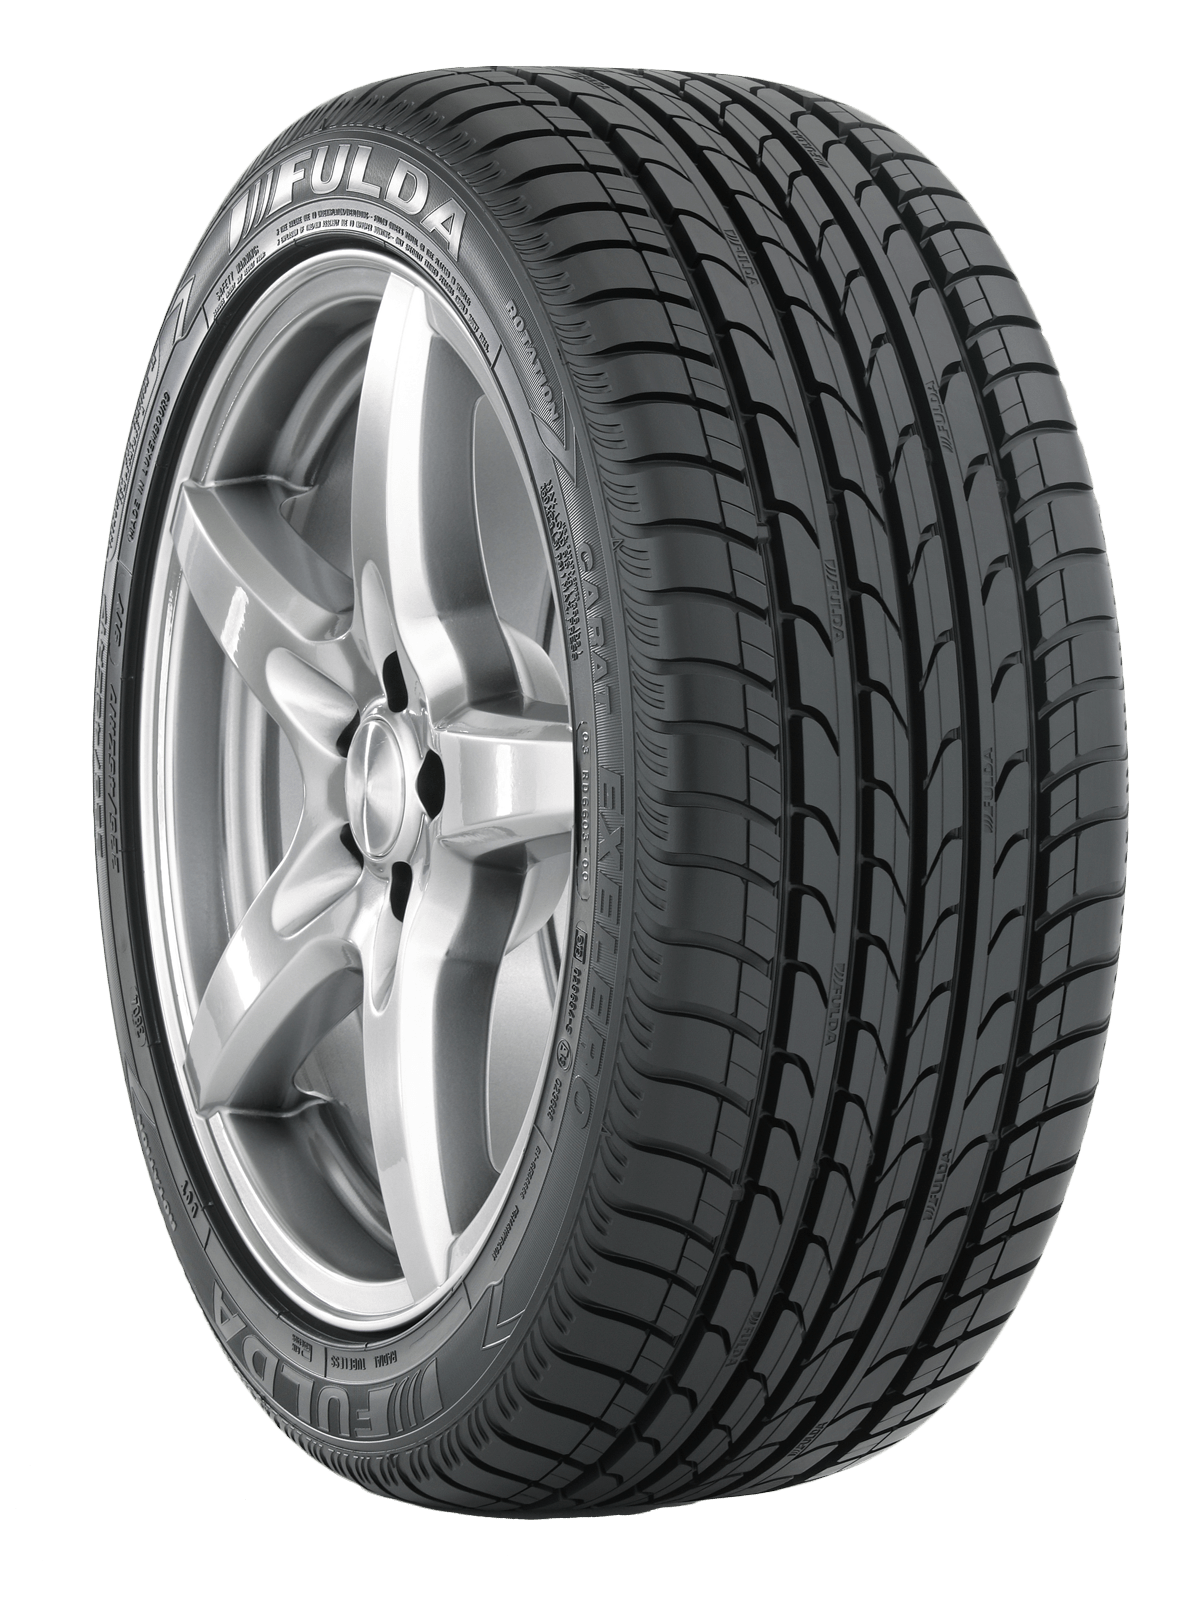 Fulda Tyre - Bike Tire PNG